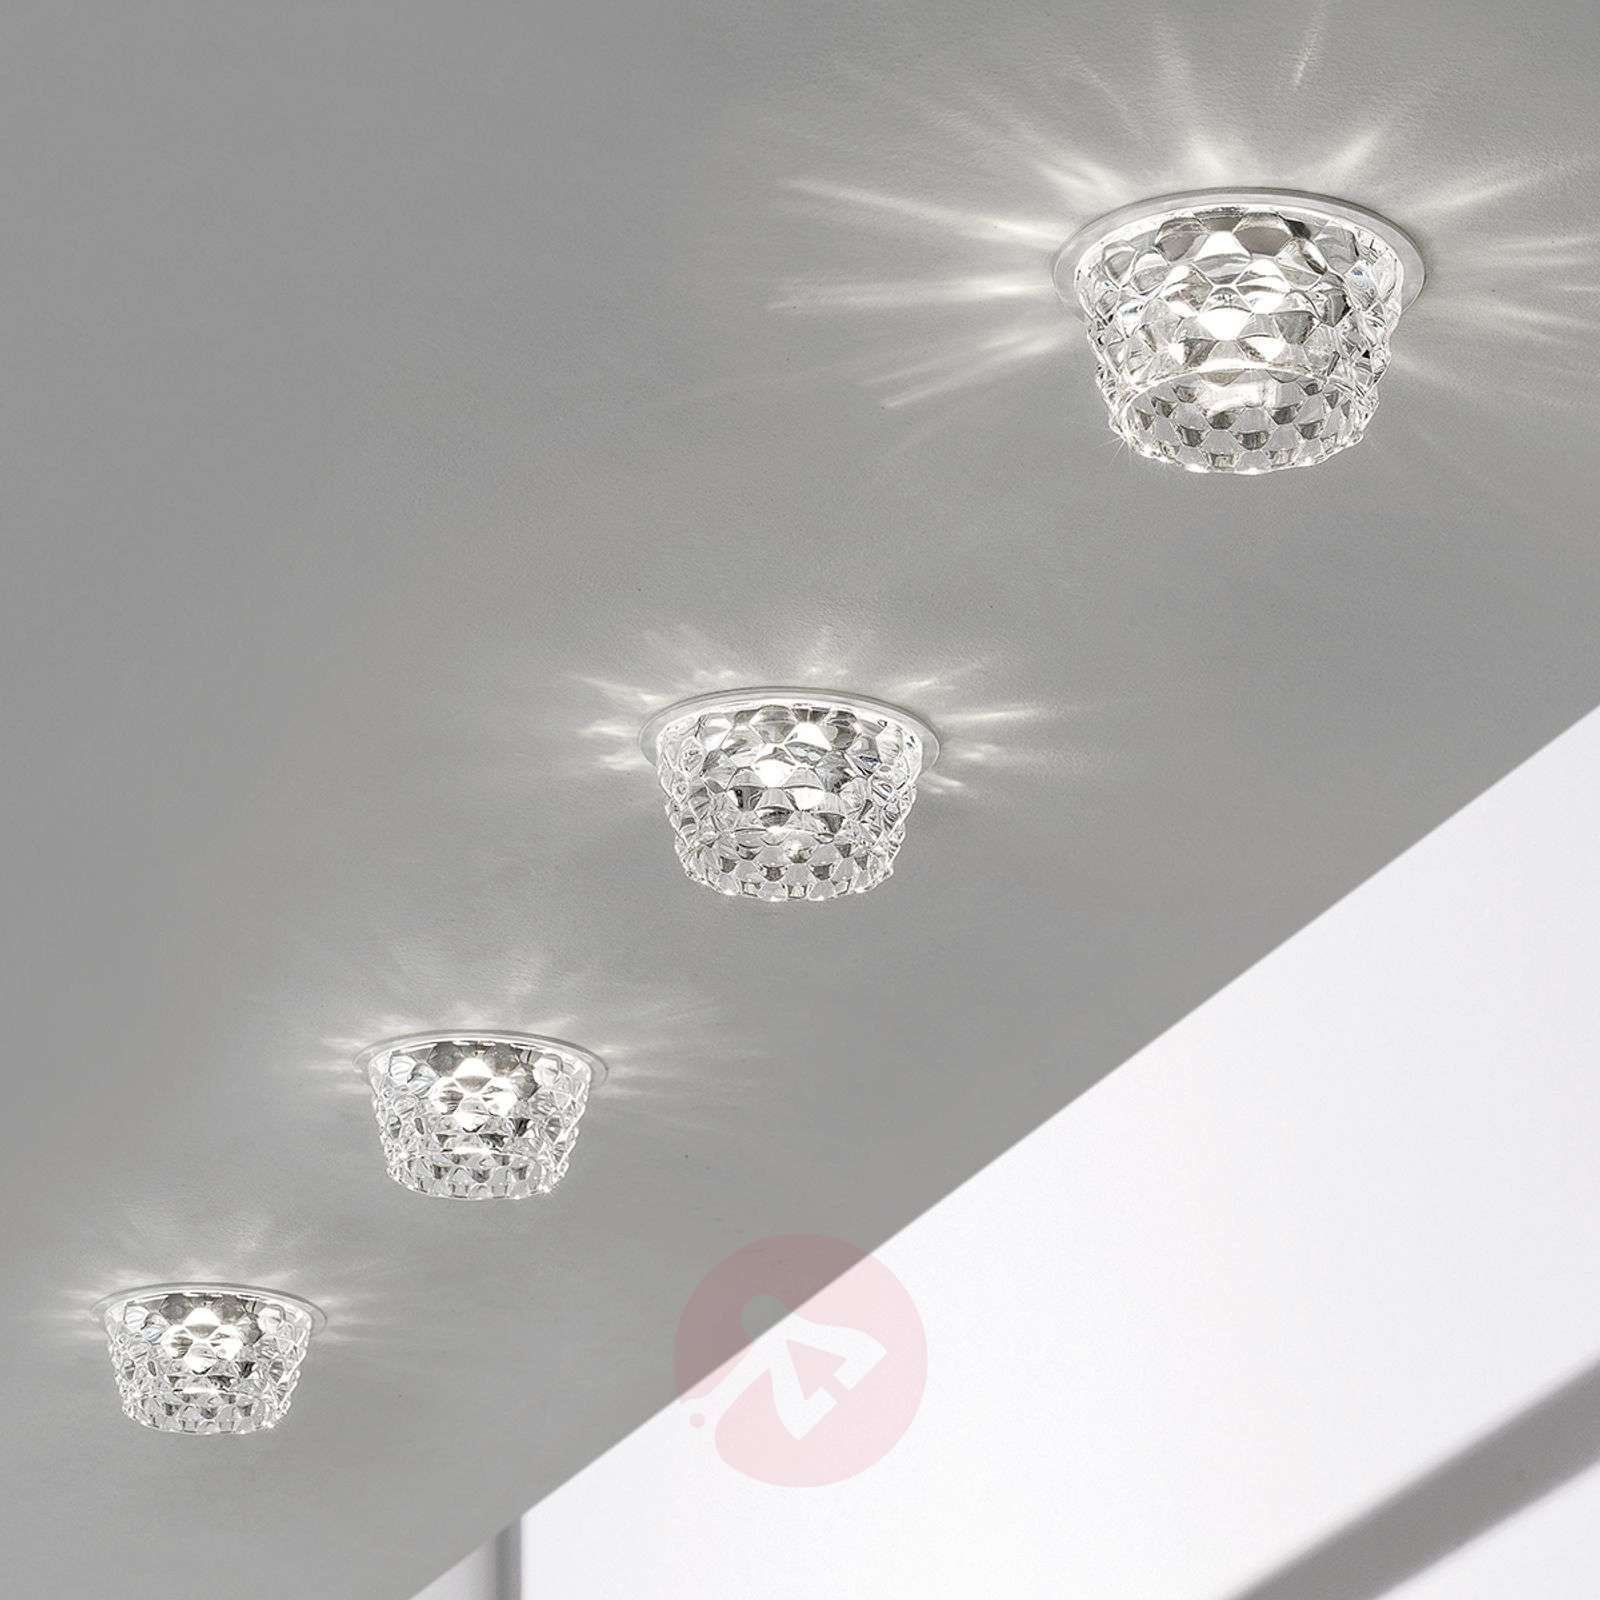 Glass led recessed ceiling light fedora clear lights glass led recessed ceiling light fedora clear 1088114 01 mozeypictures Gallery